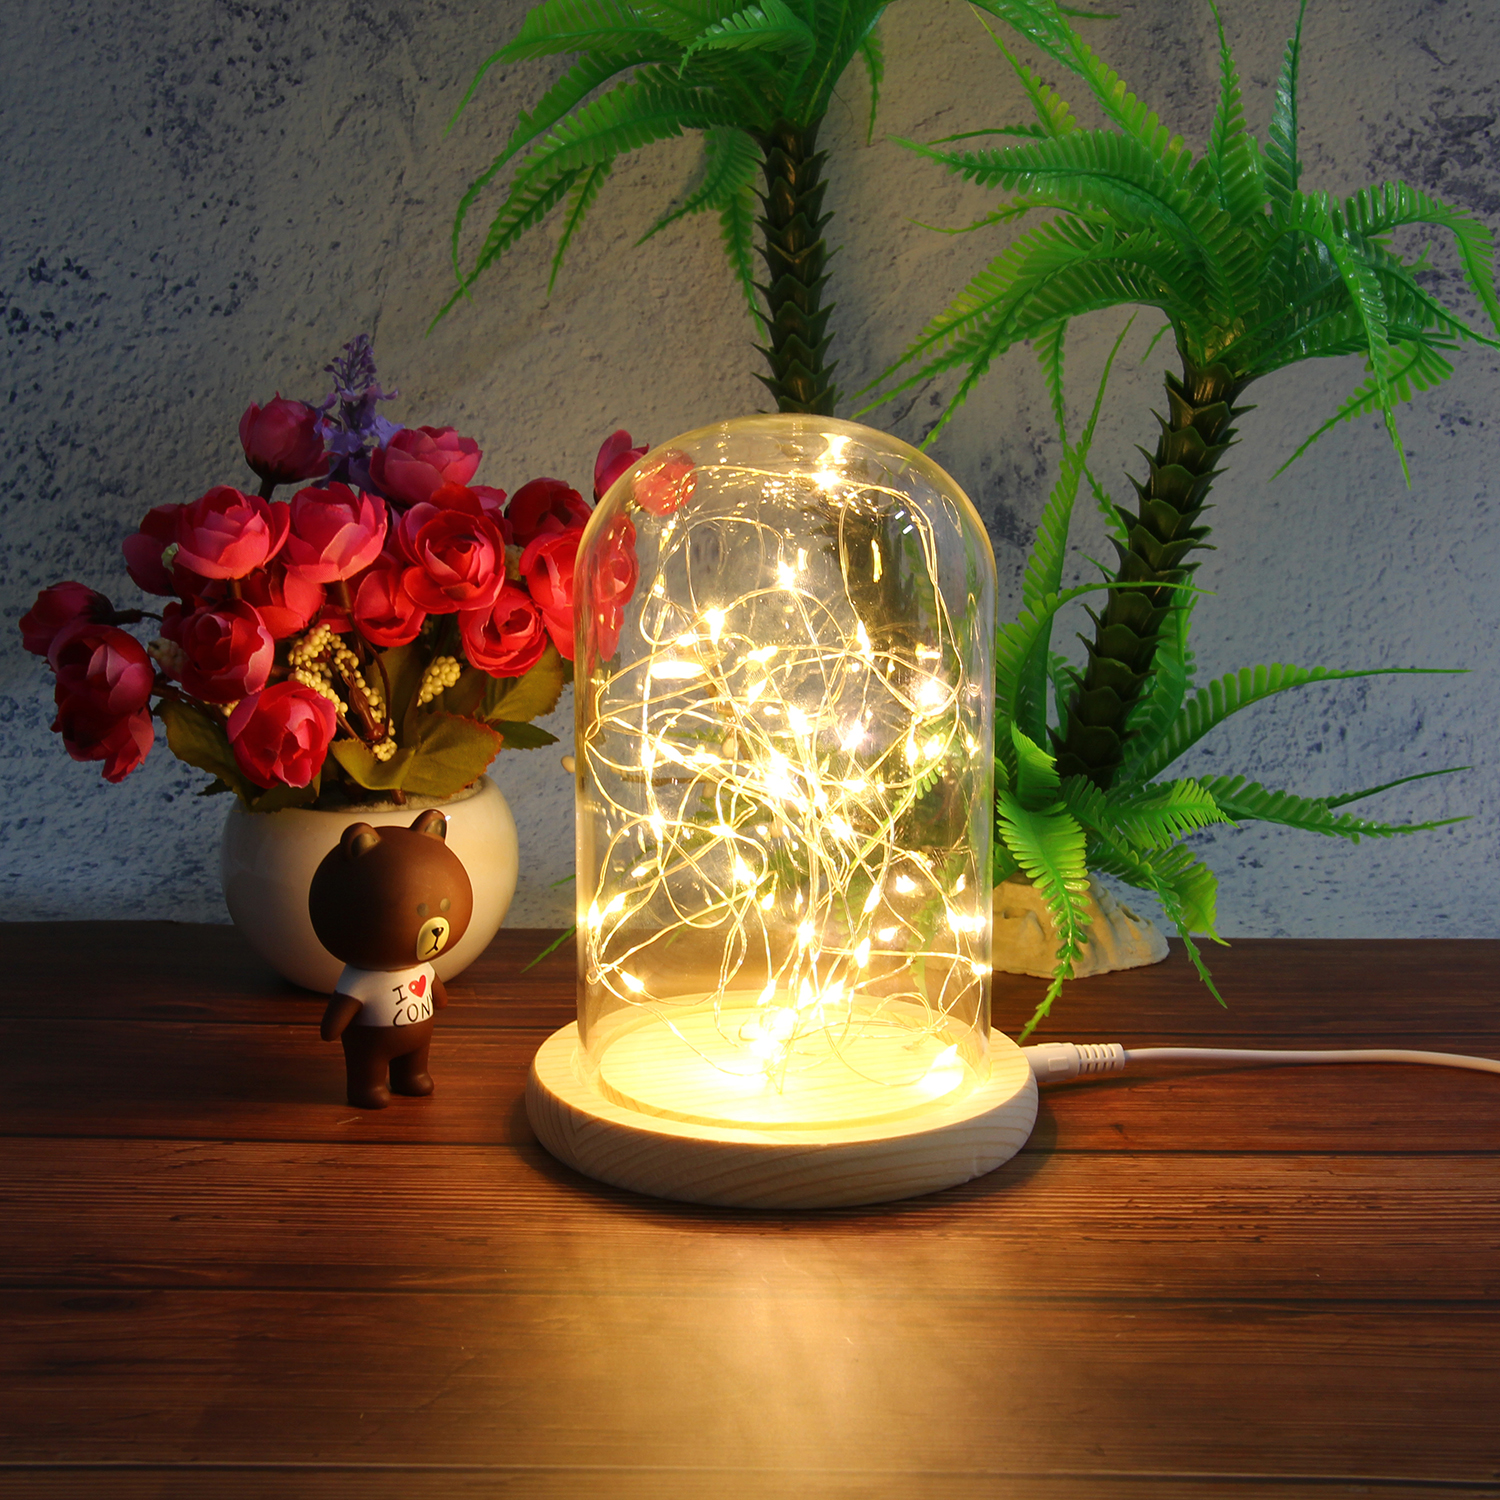 Creative Glass Dome Bell Jar Display Wooden Base with LED Light Warm Fairy Starry String Lights Desk Ornament for Home Decor 4